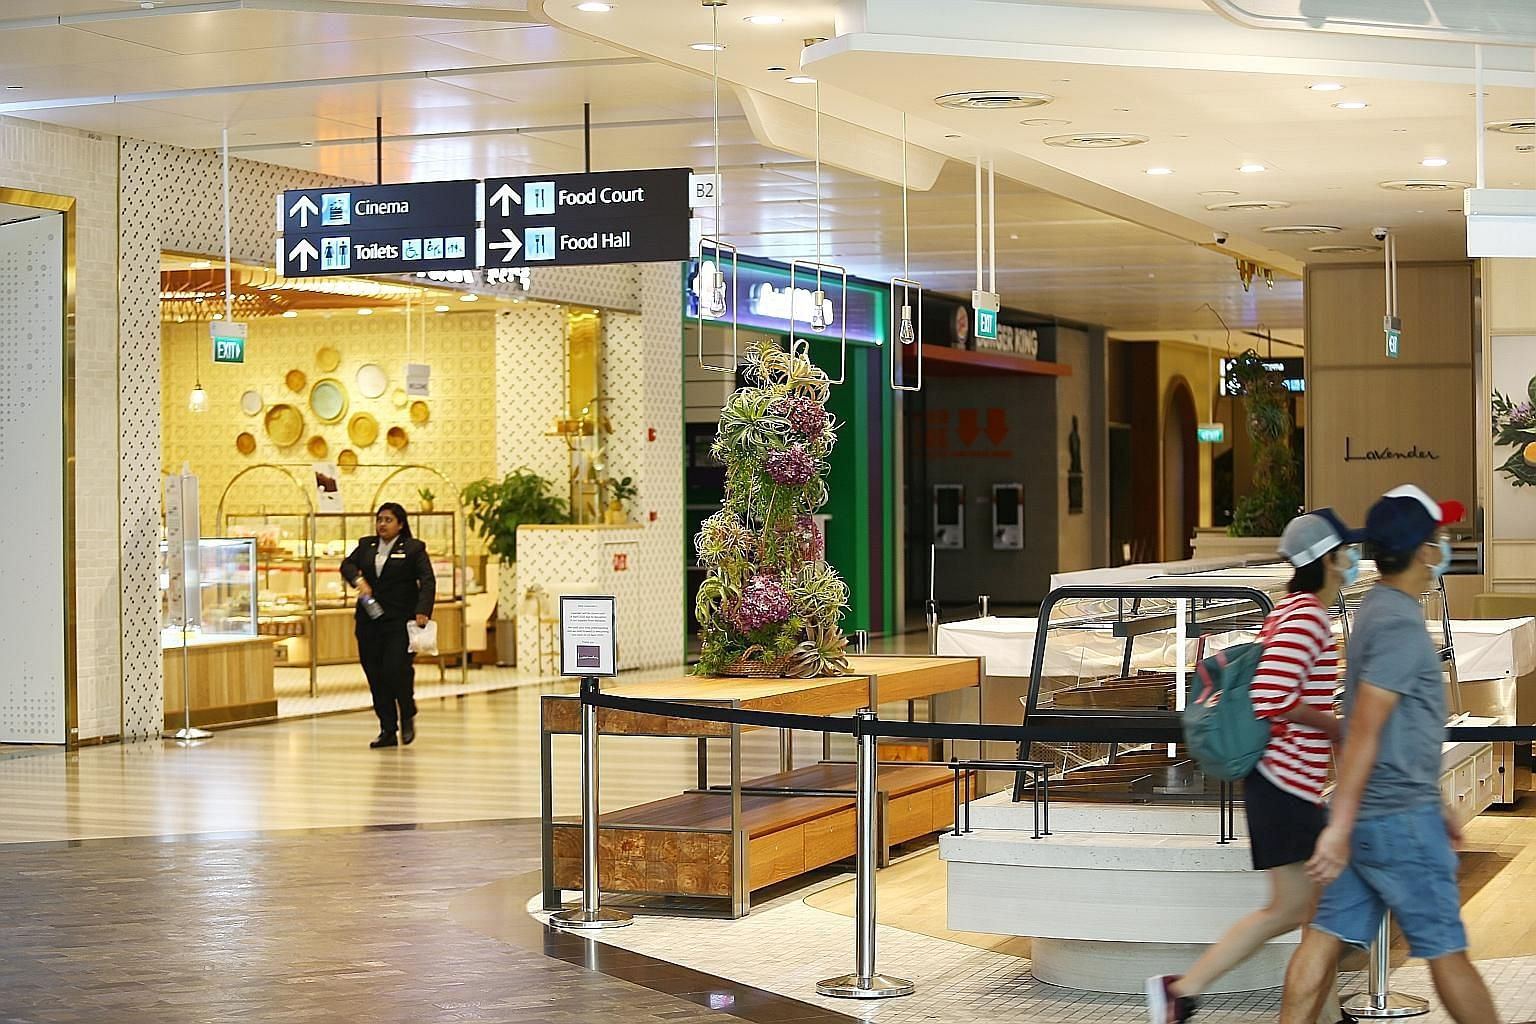 Feedback on the survey by the Competition and Consumer Commission of Singapore will give government agencies a more holistic view of the private retail lease market and identify issues that need to be addressed.